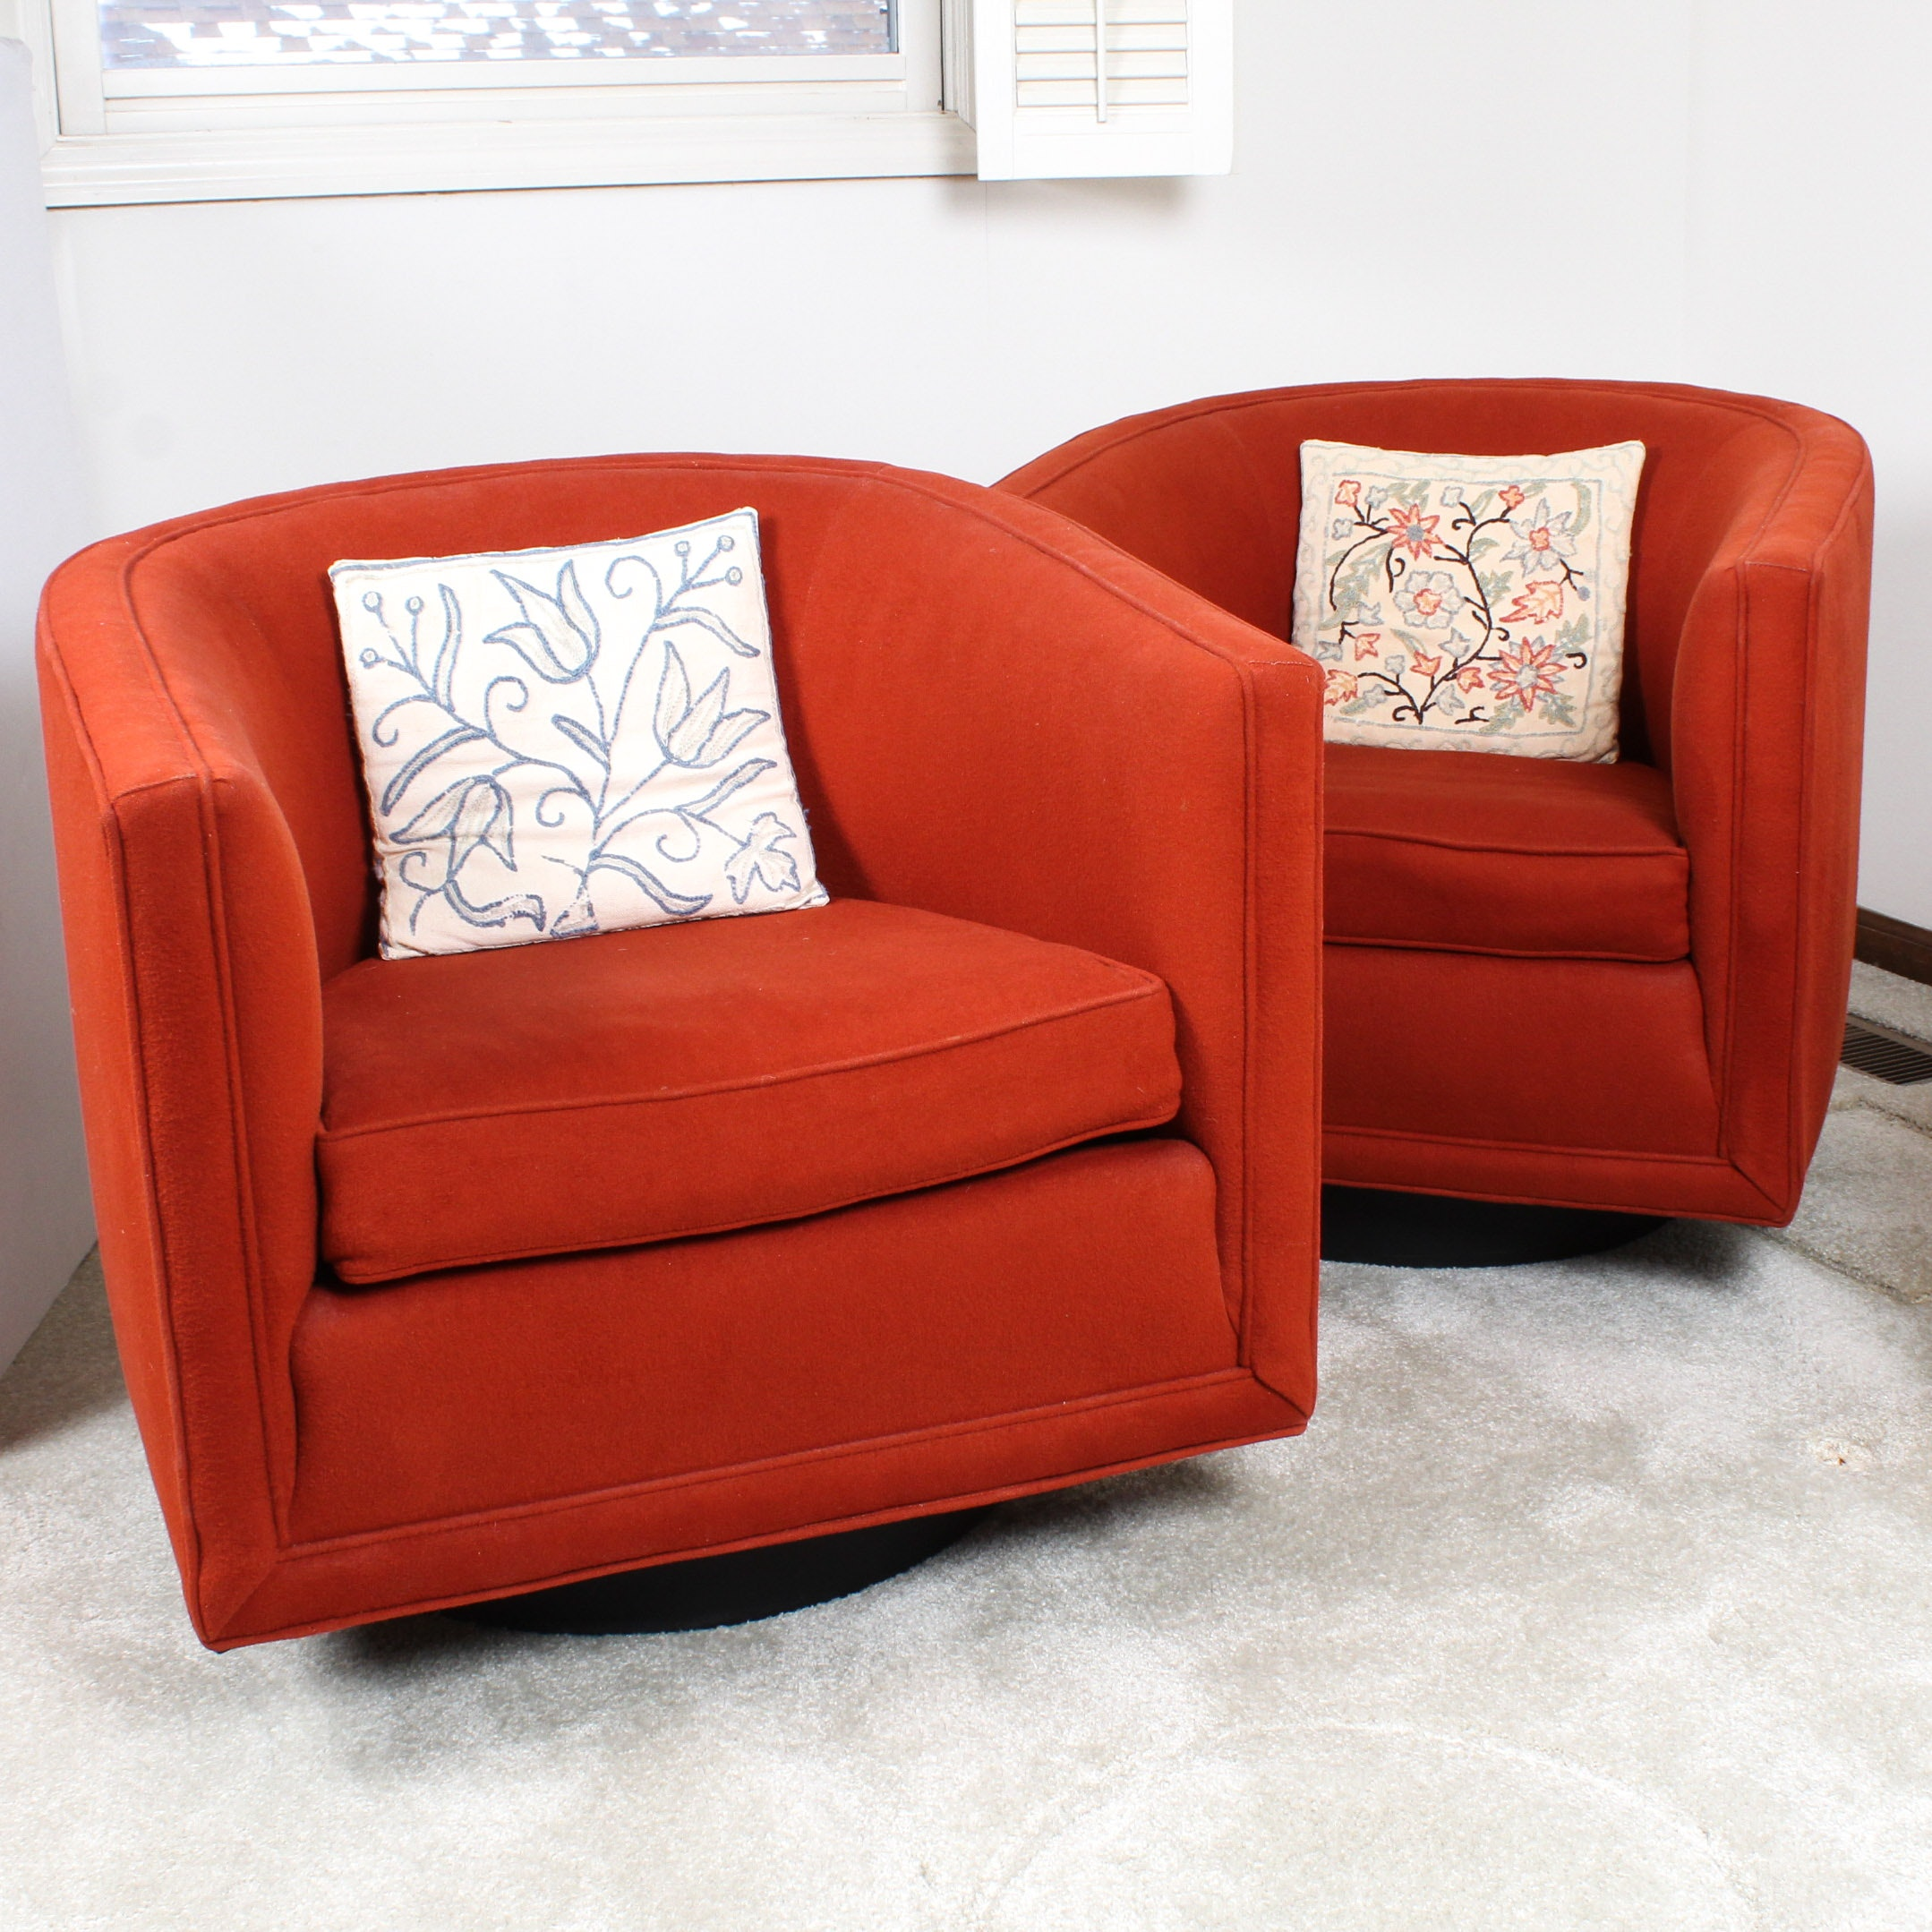 Founders Barrel-Back Swivel Armchairs, Mid-Century